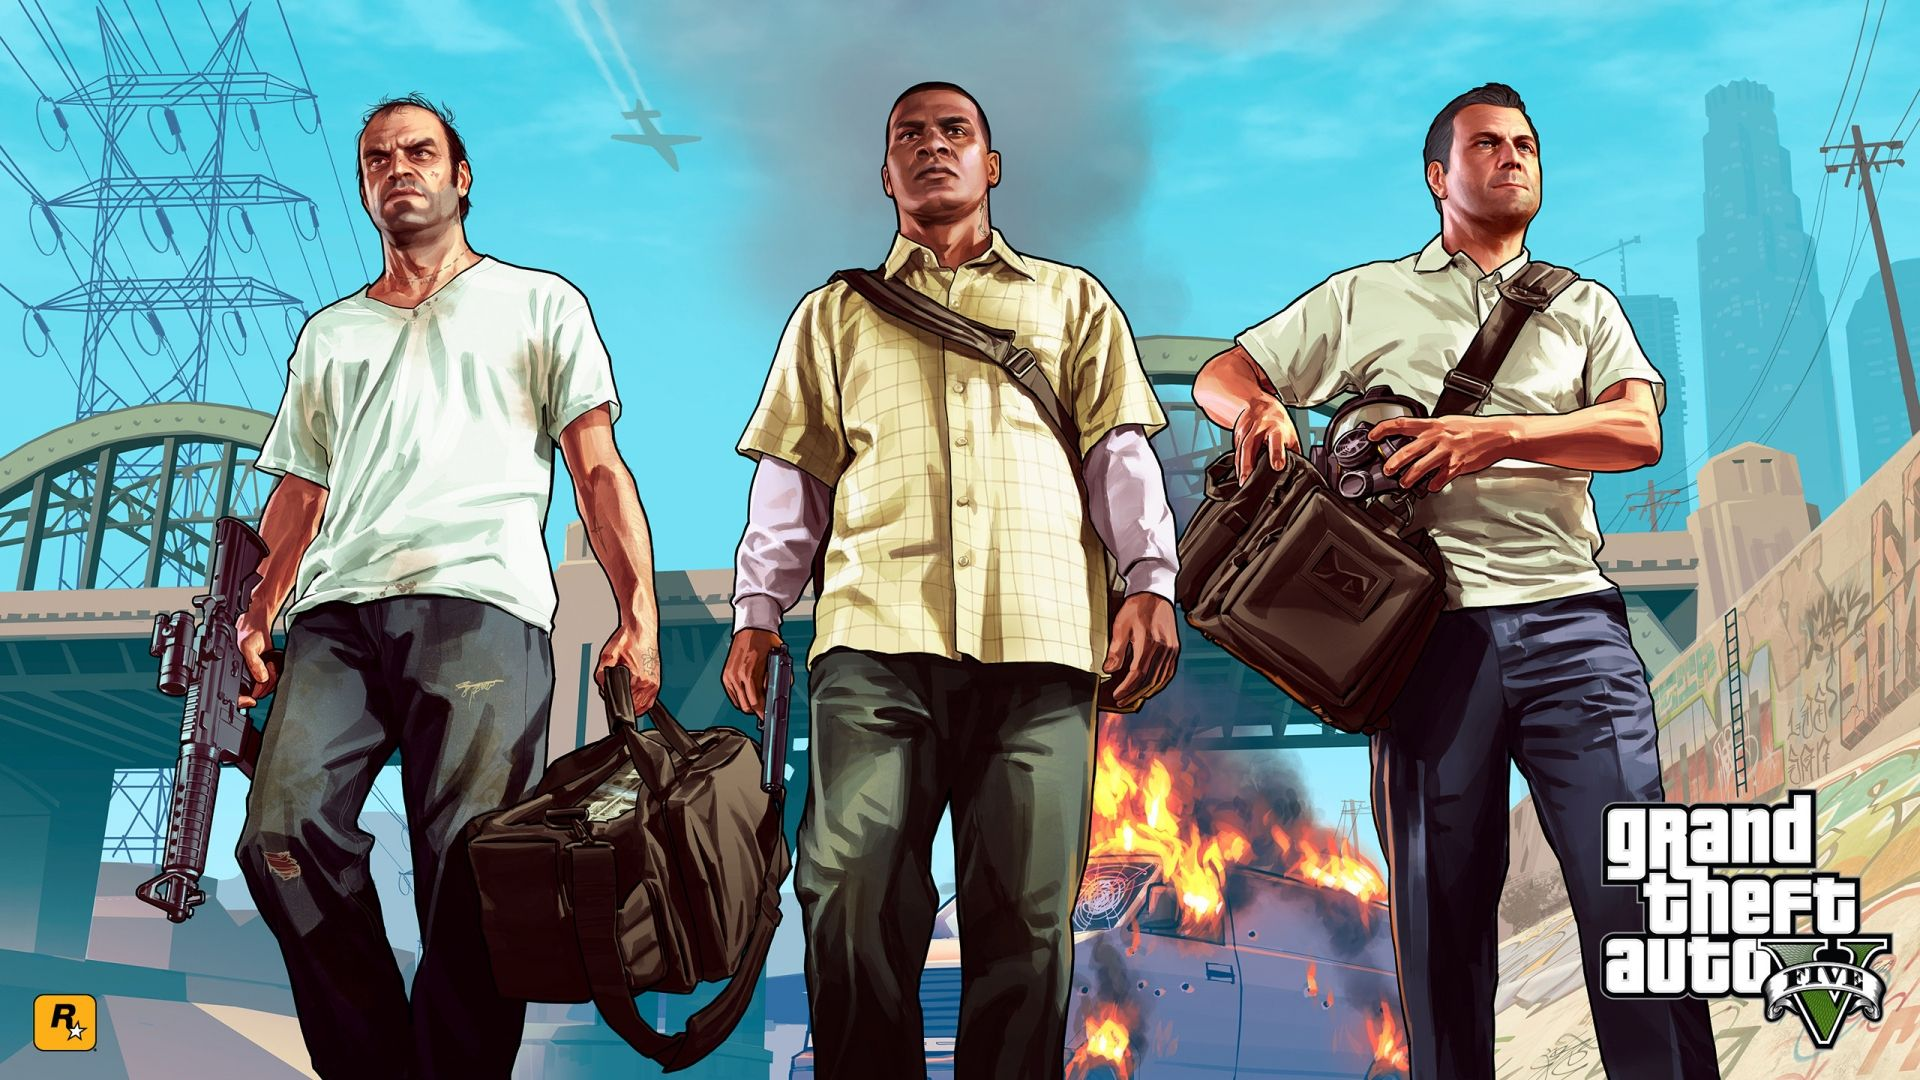 Gta 5 Main Characters For 1920 X 1080 Hdtv 1080p Resolution Com